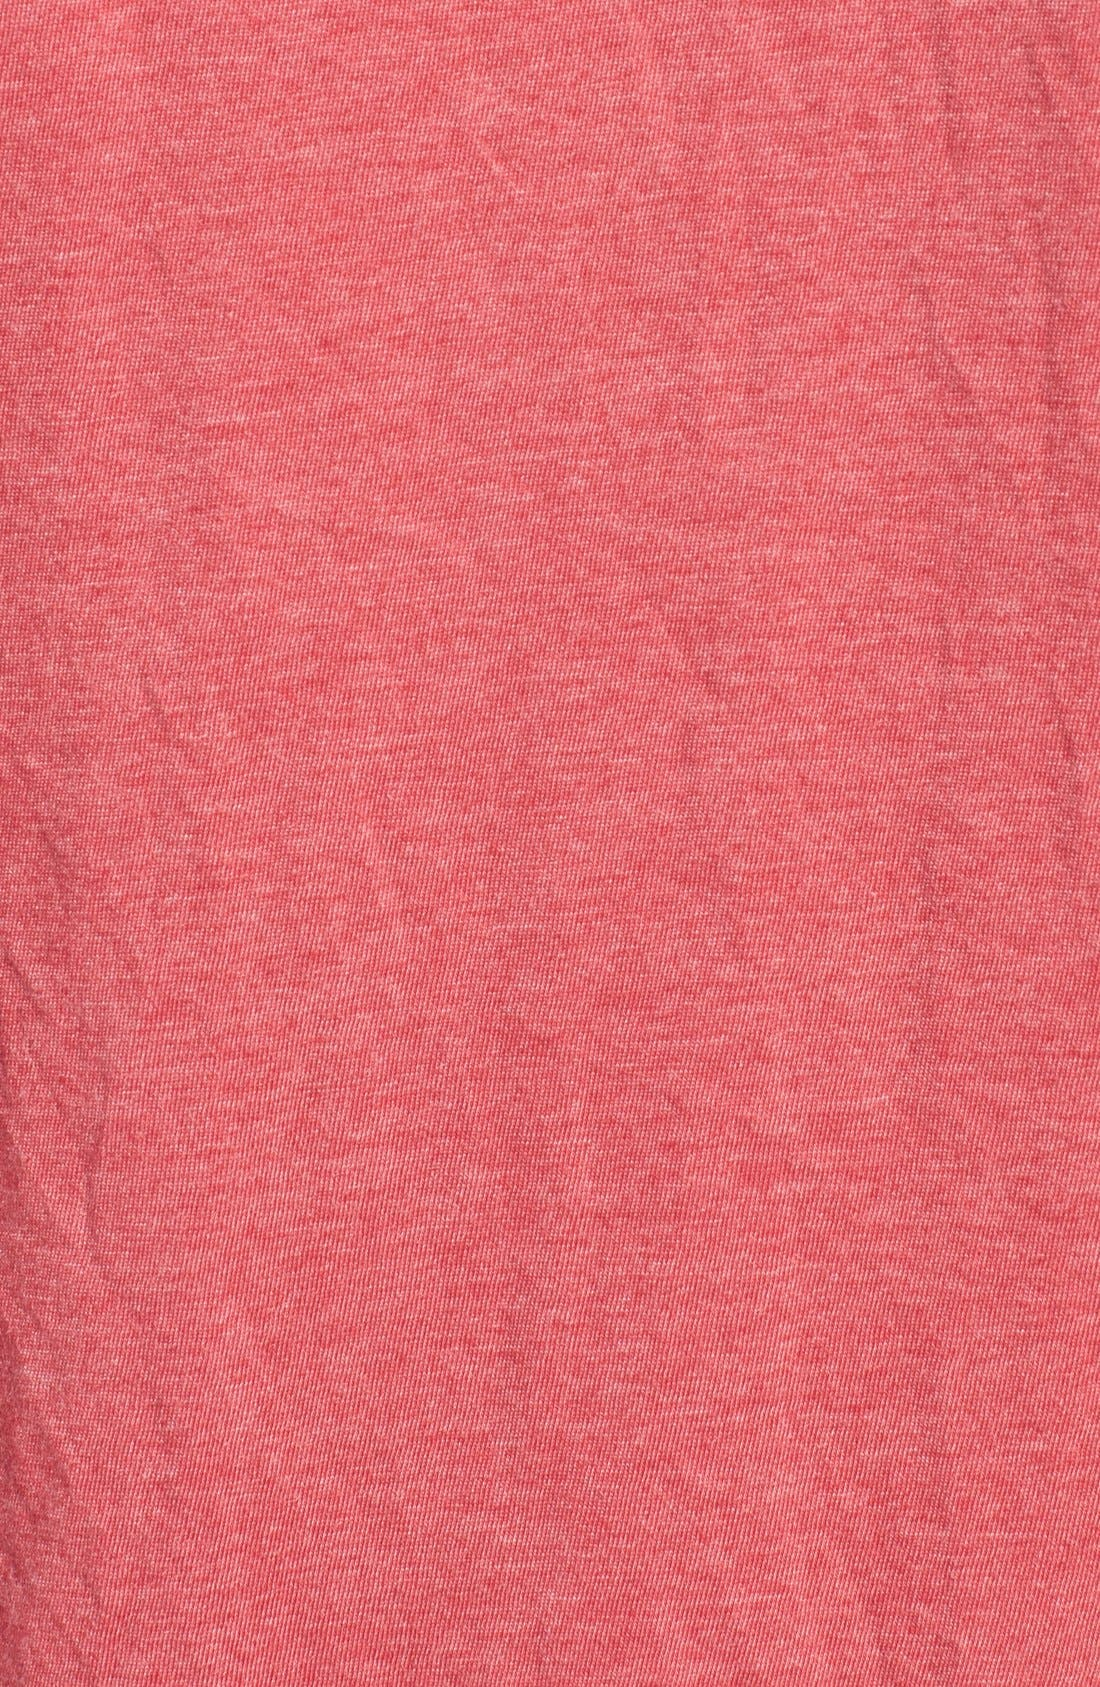 Alternate Image 5  - Red Jacket 'California Angels' Graphic V-Neck T-Shirt